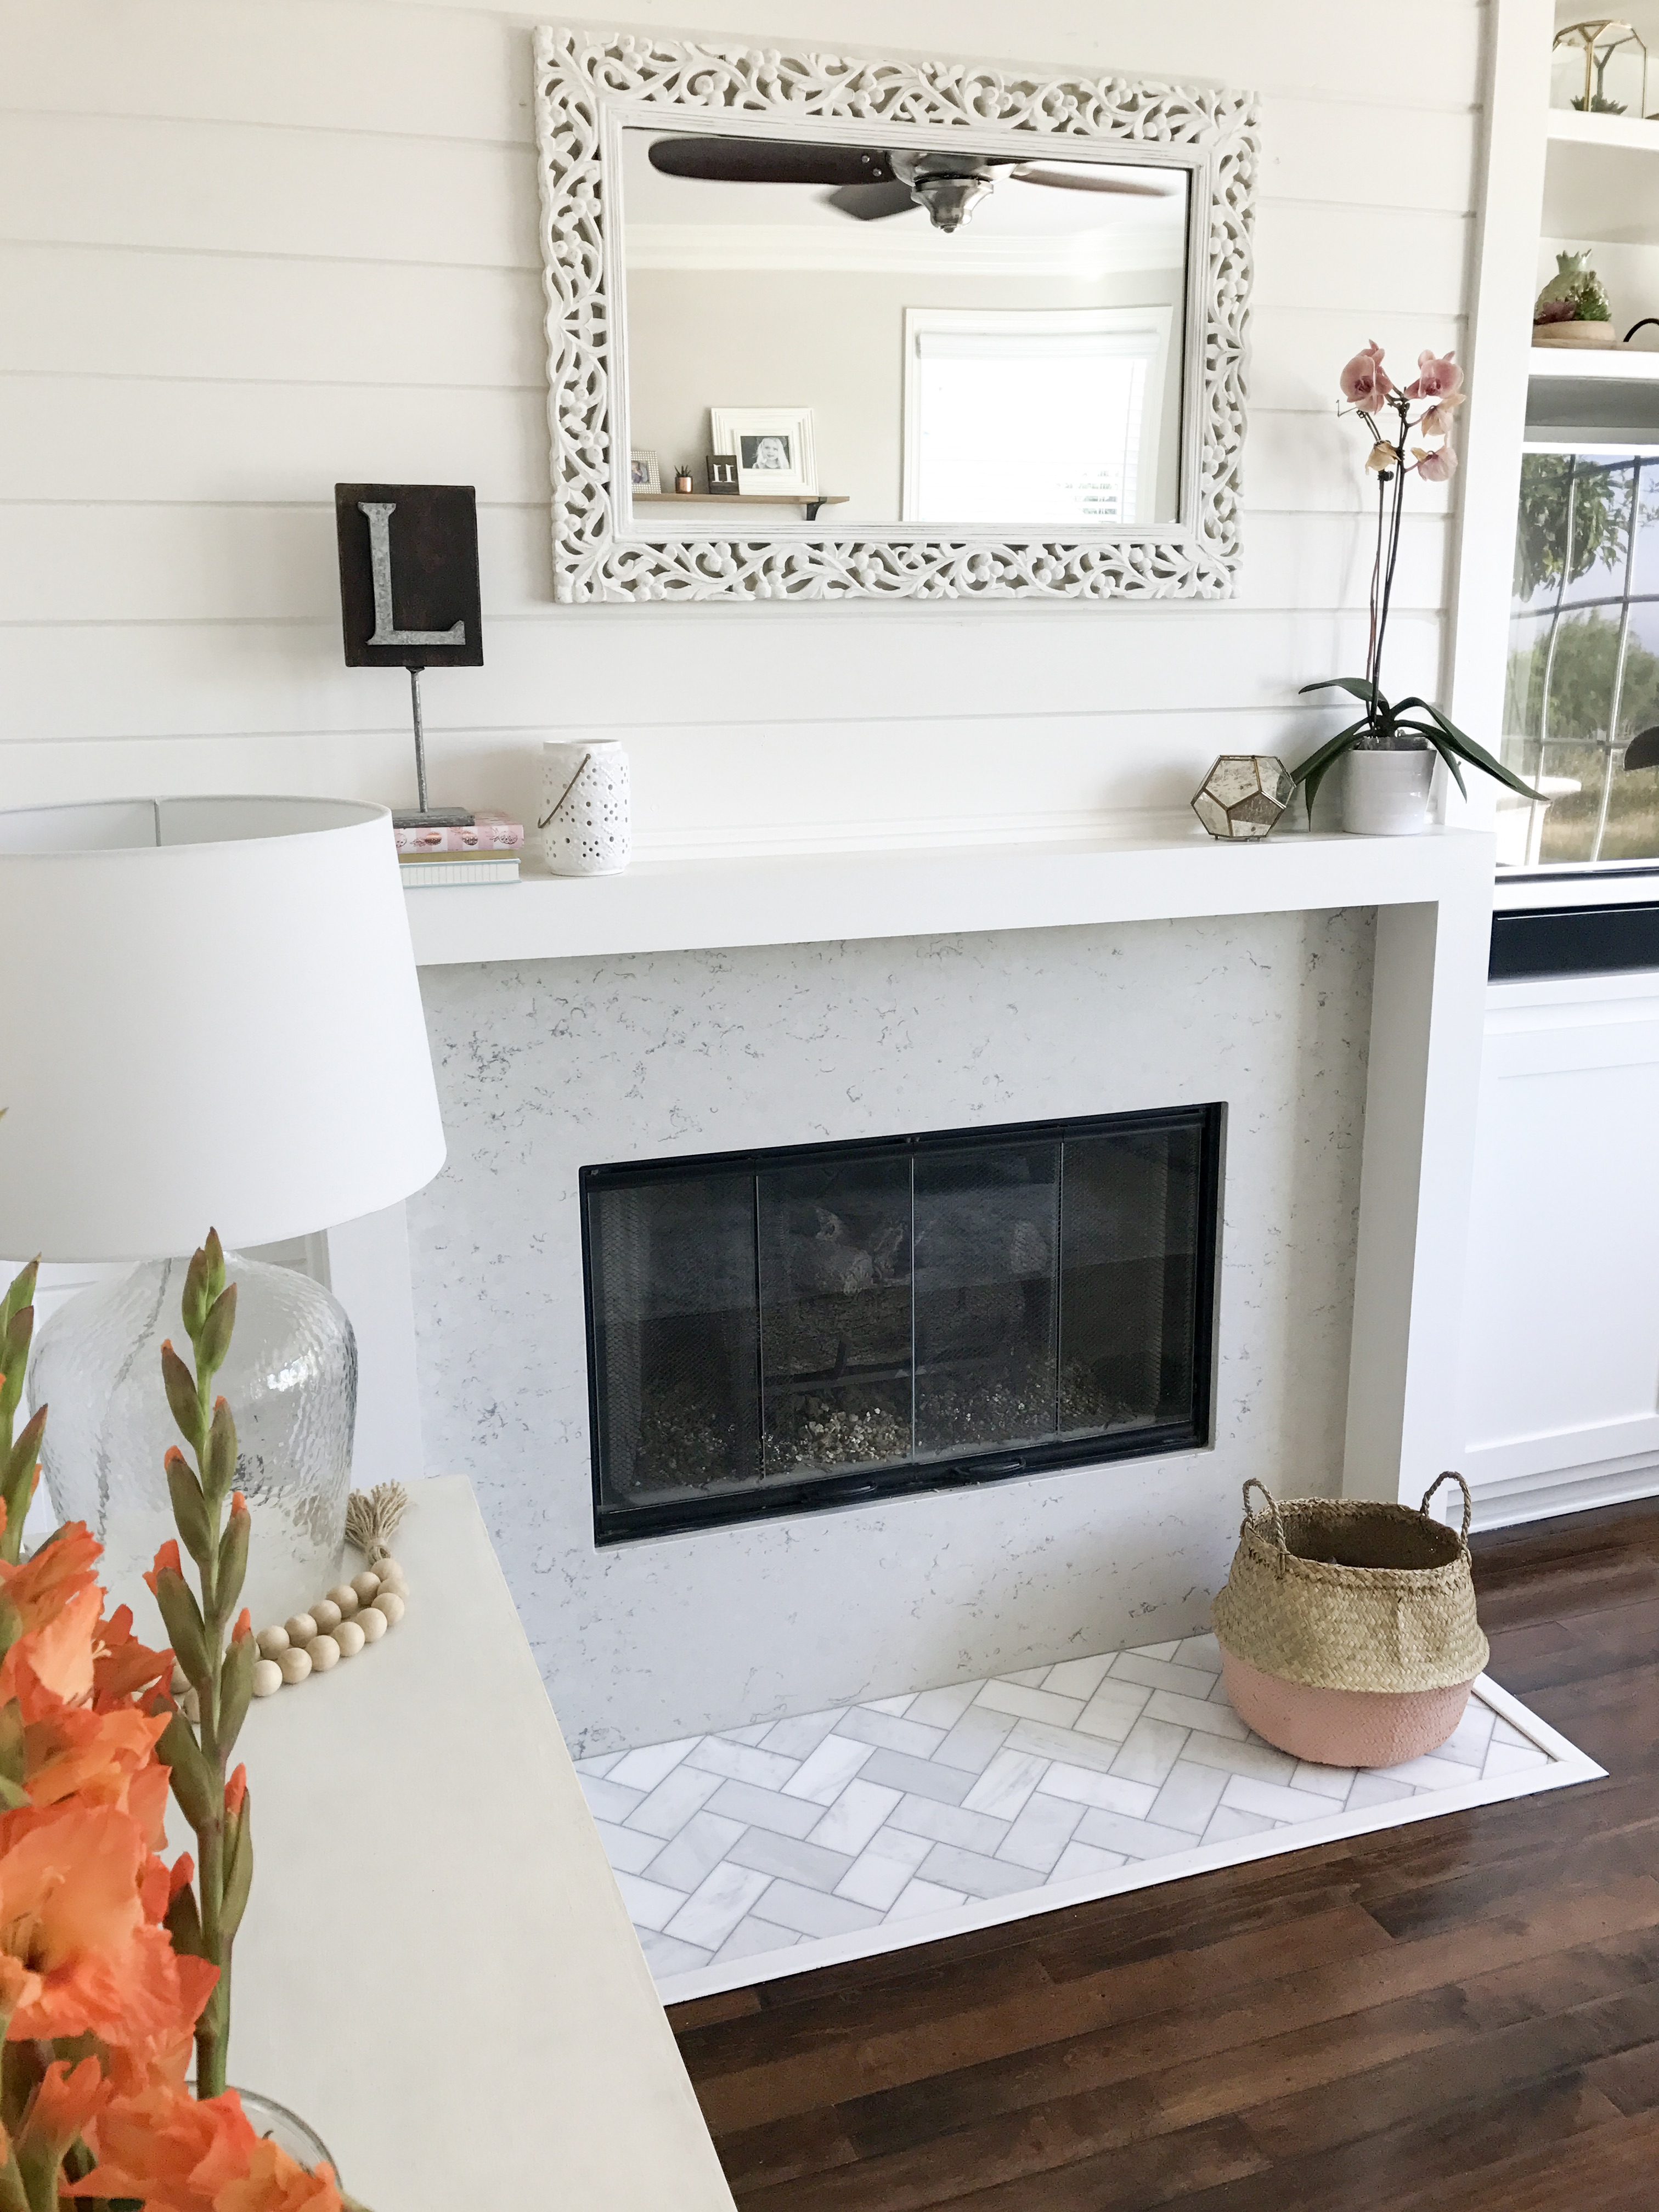 I Love The Sleek Modern Element To Mantel And Shiplap Wall Adds A Farmhouse Touch You Can See How Ive Styled Our Throughout Year By